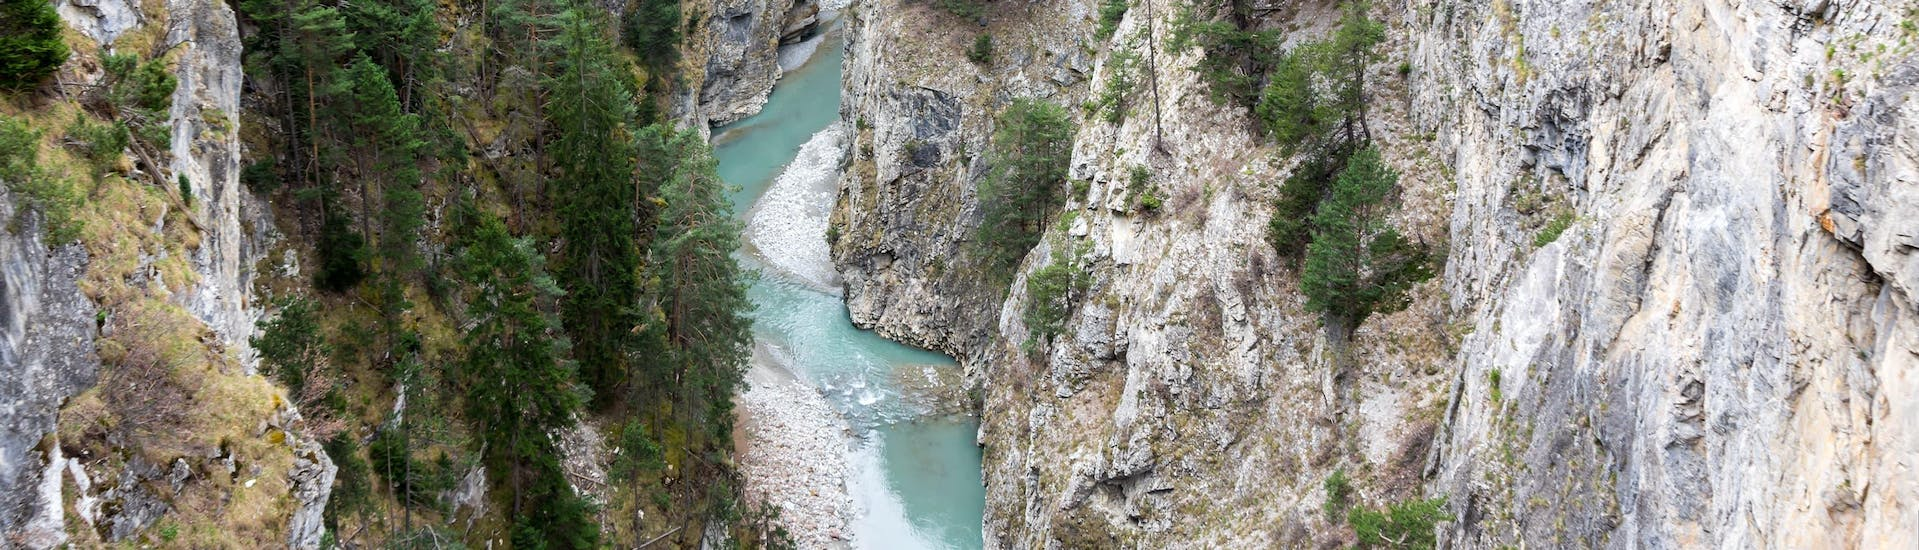 View of a gorge in the Annecy area where it is possible to do canyoning.